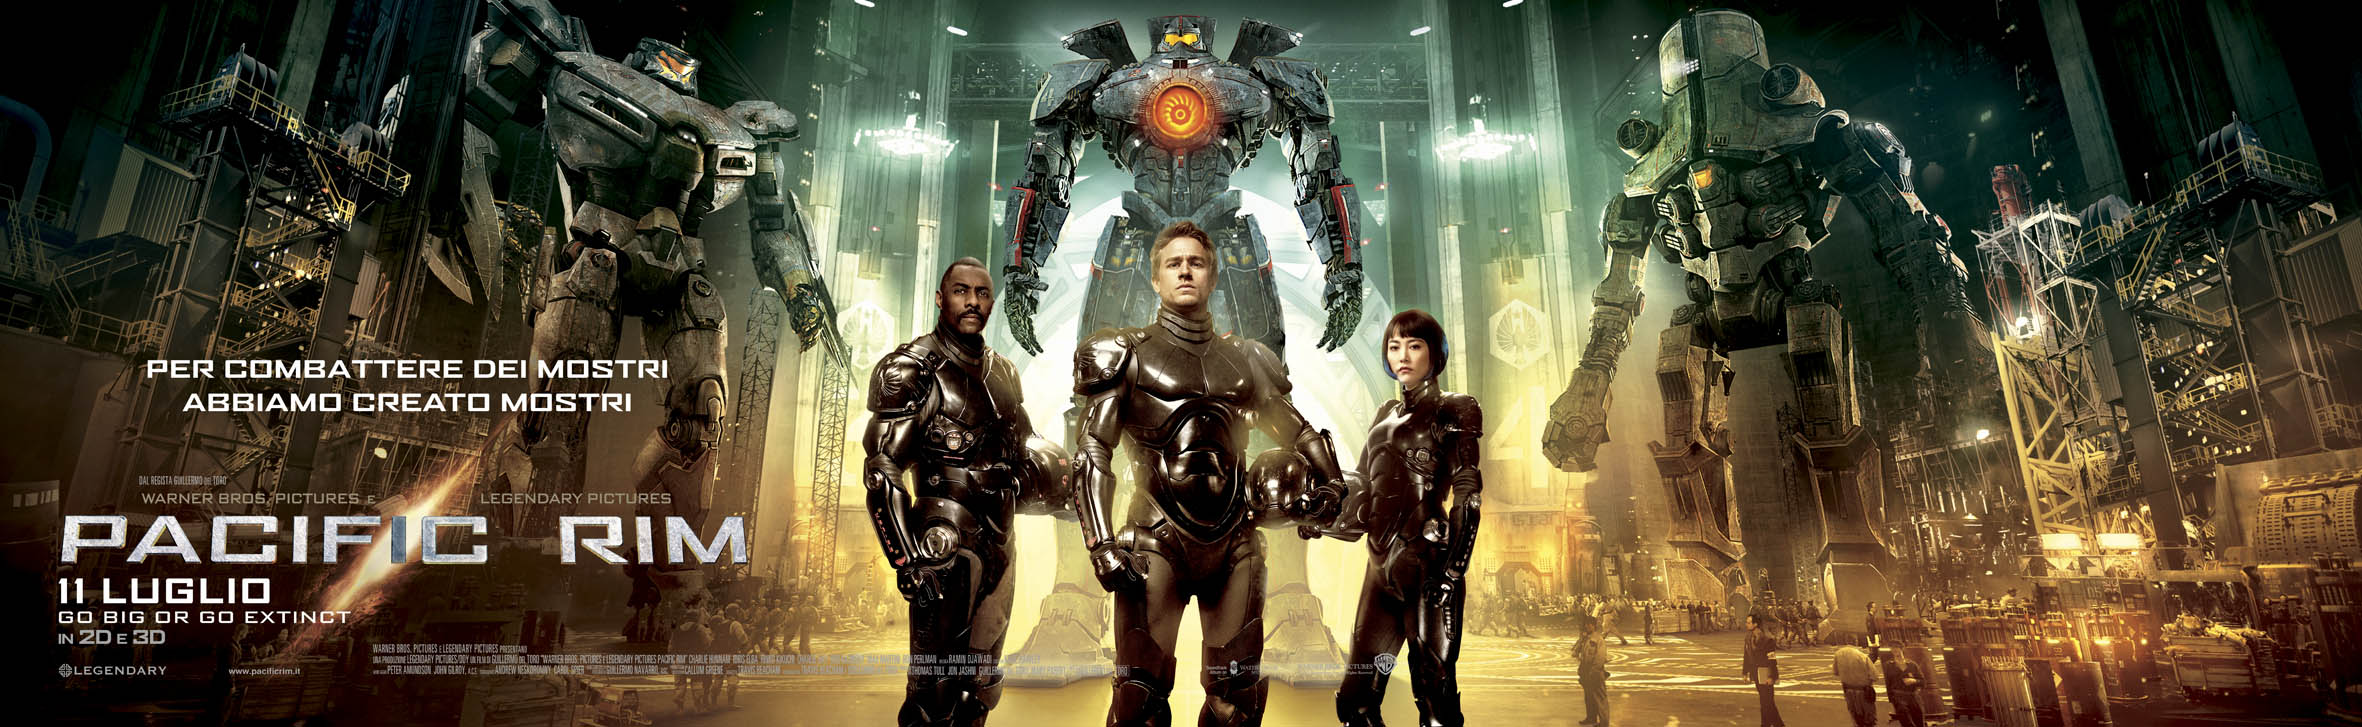 pacific rim artwork 1